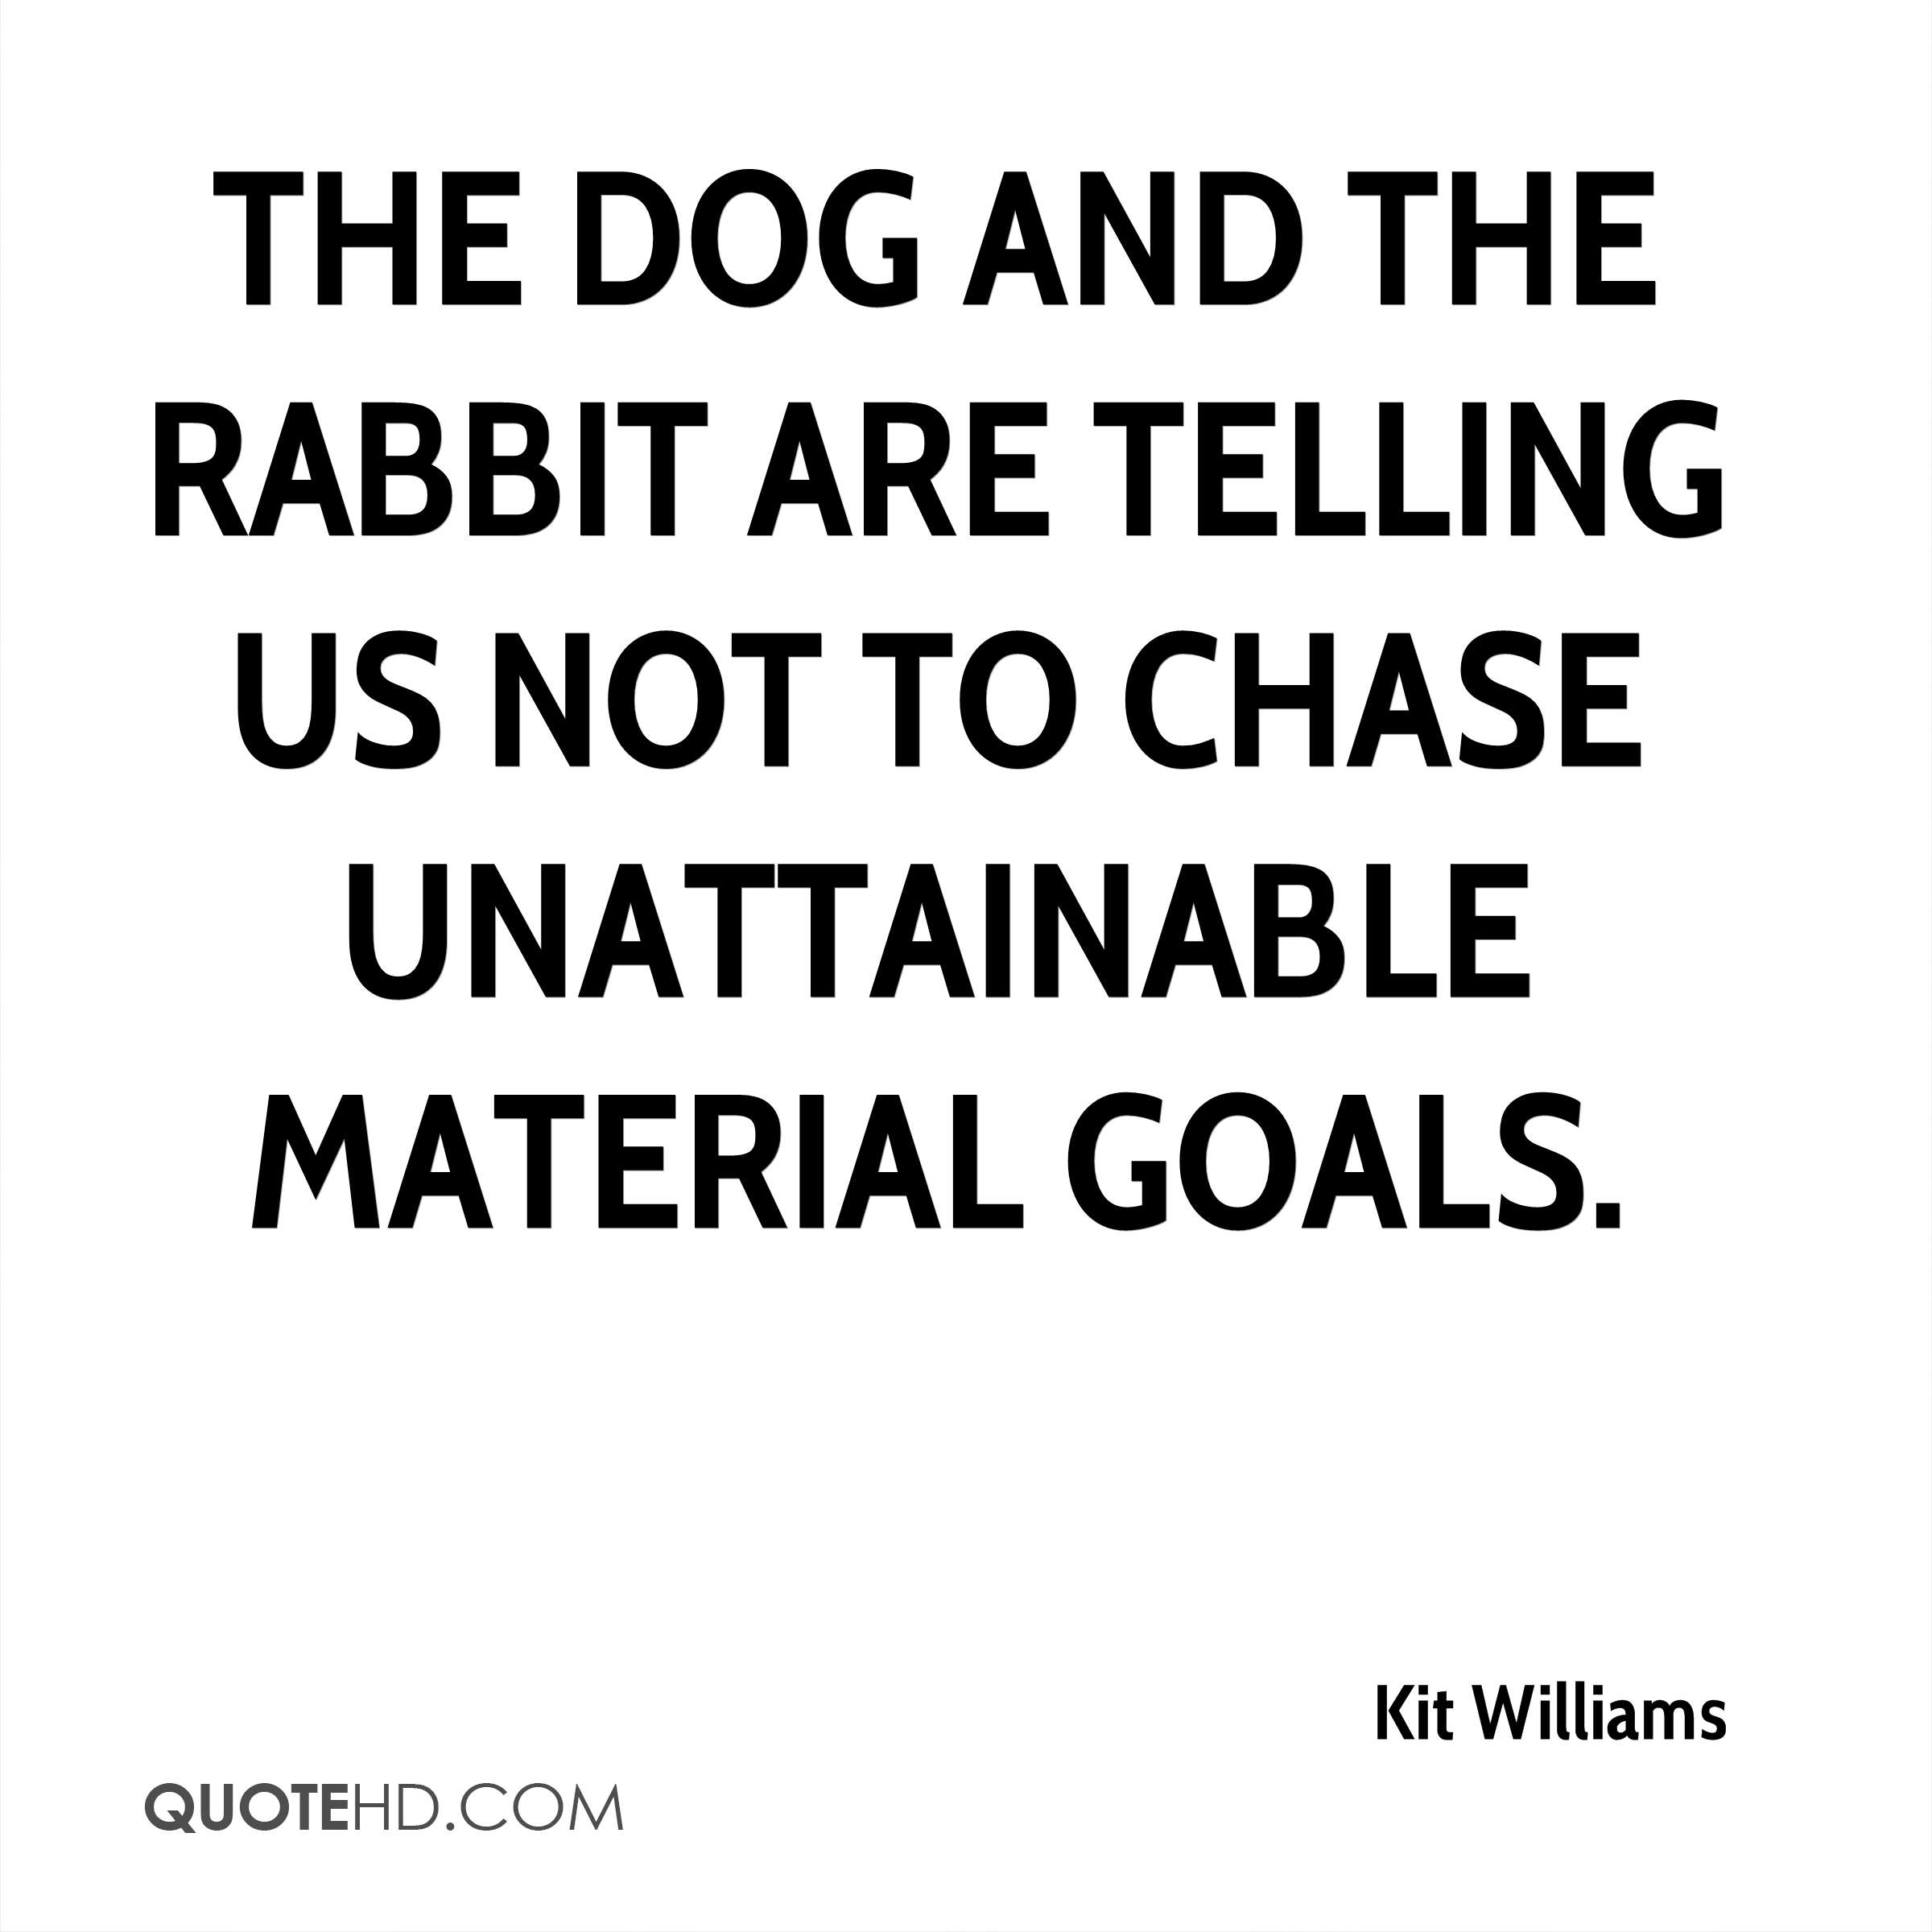 The dog and the rabbit are telling us not to chase unattainable material goals.